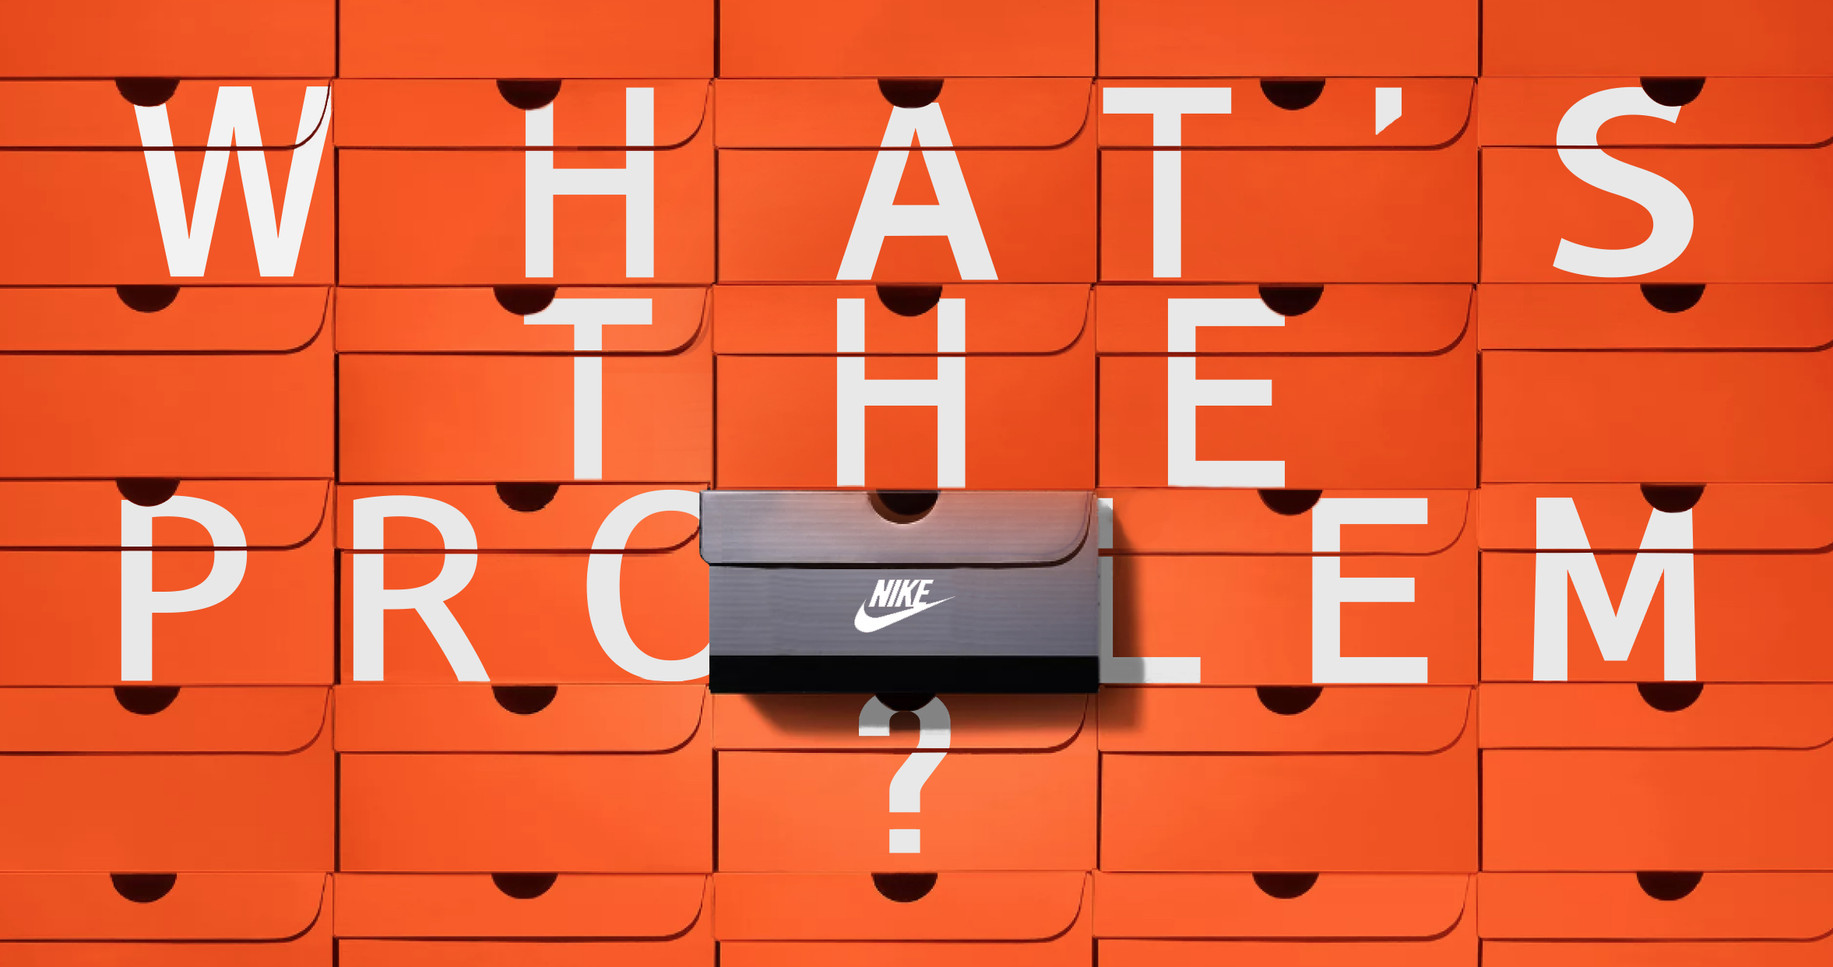 Nike Obscure message 2